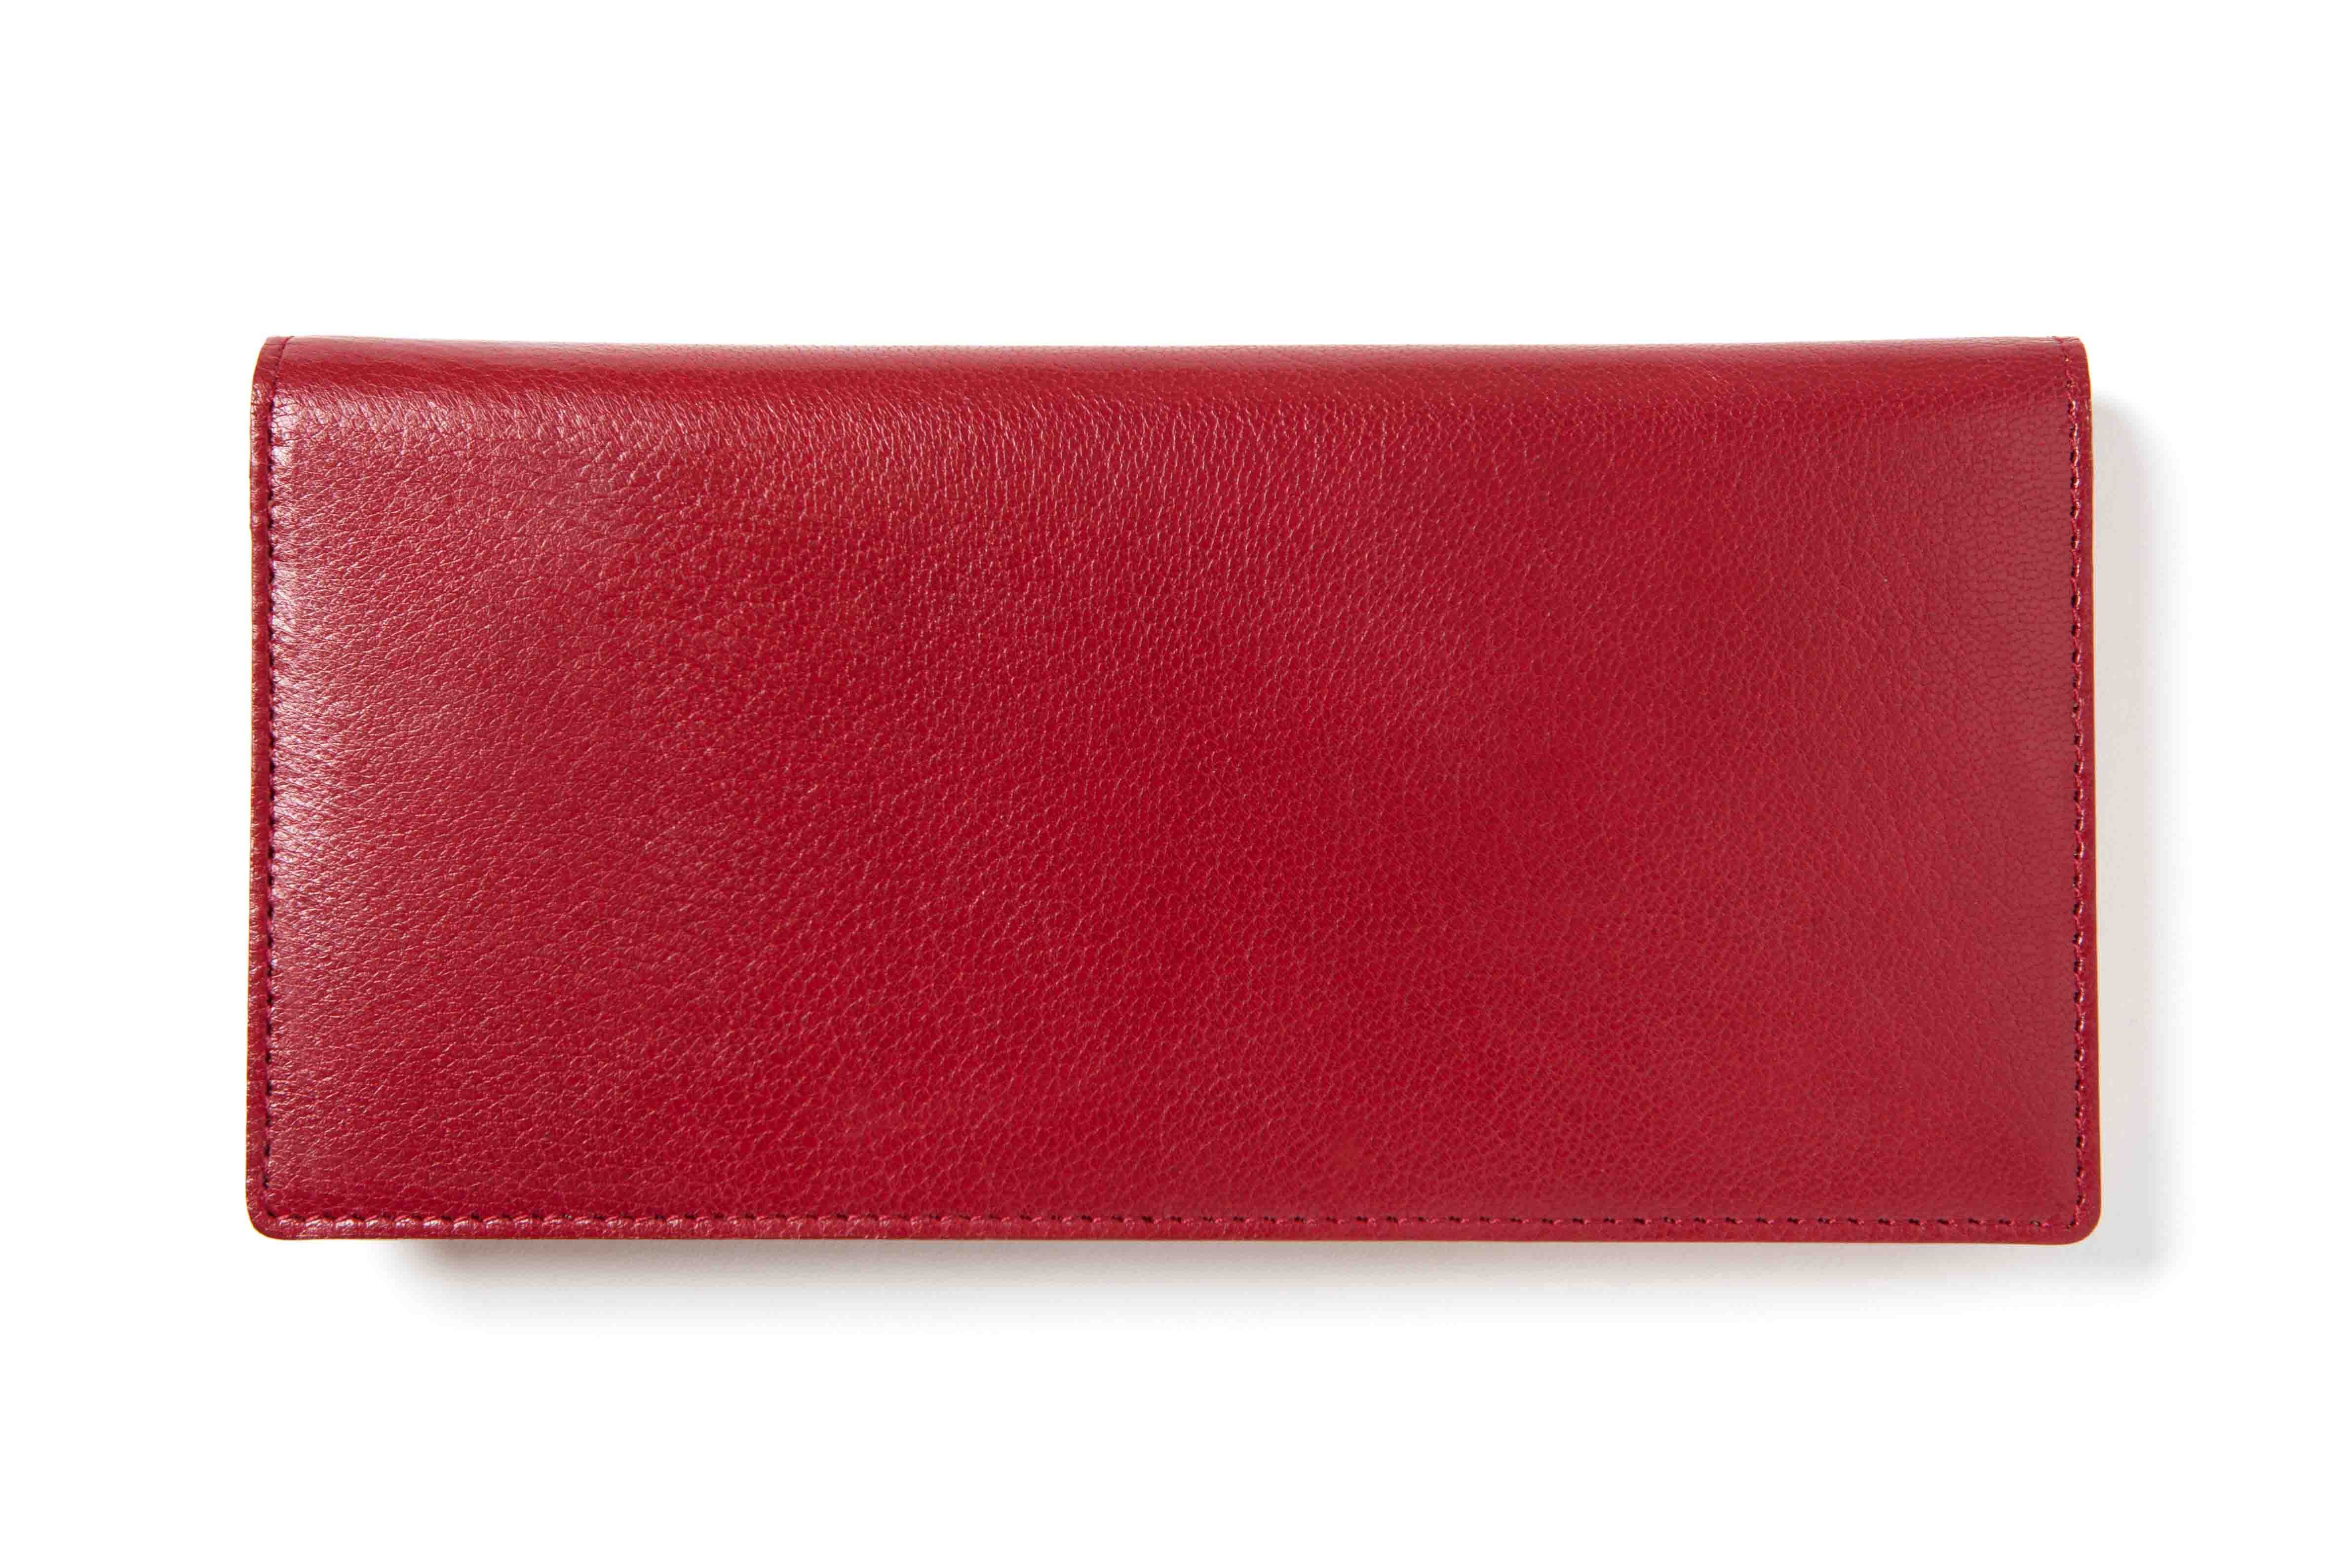 low priced bb6c4 230cd Feng Shui Lucky Wallet☆生年月日でわかるあなたに必要な風水 ...